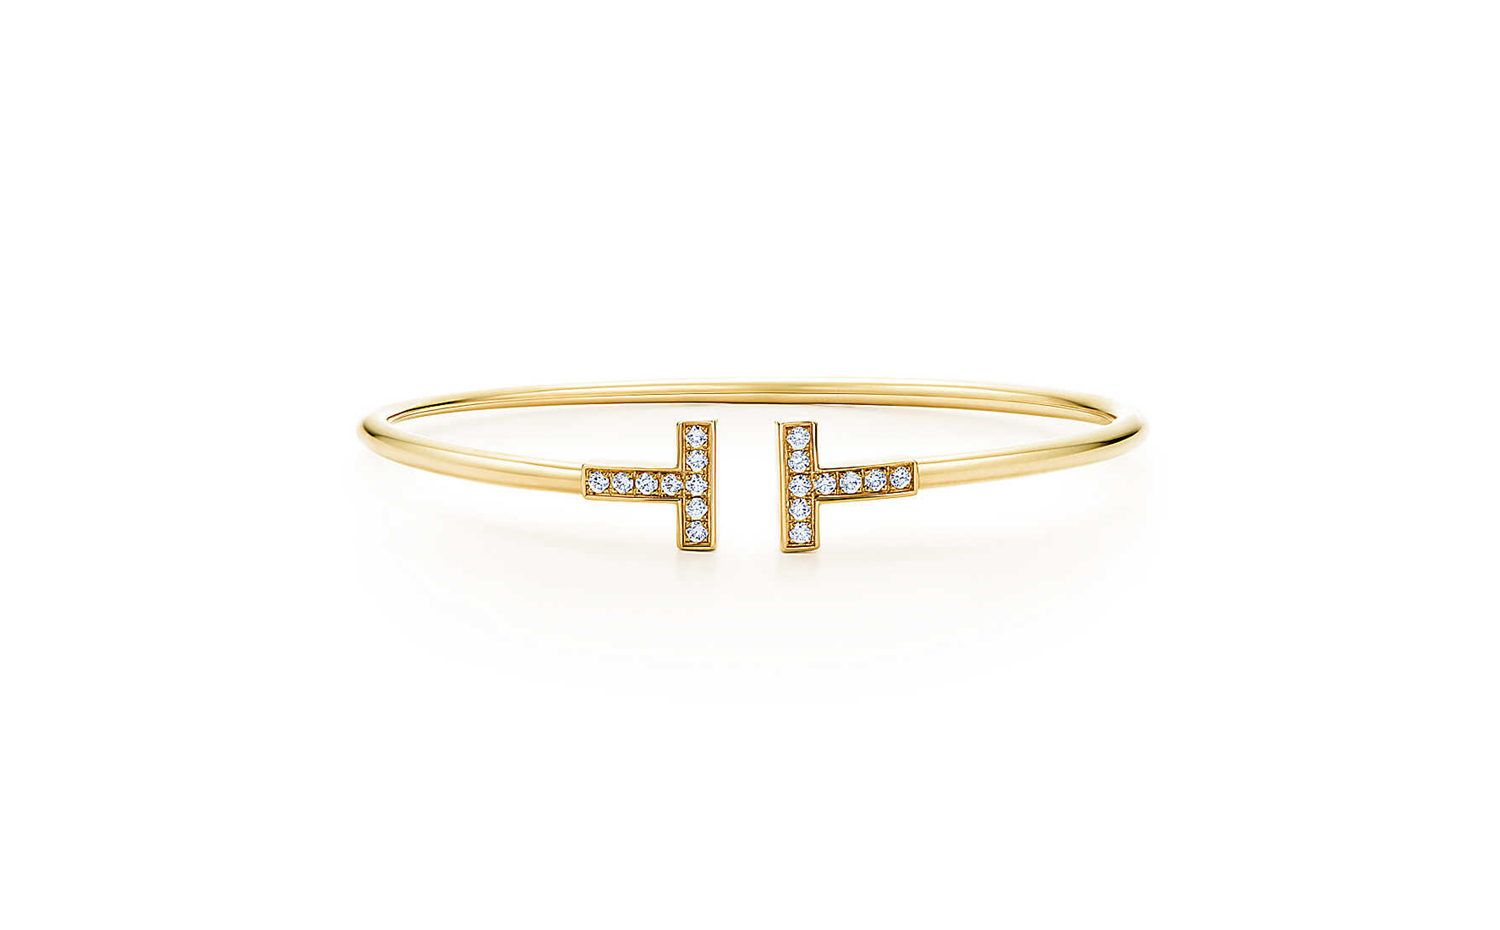 Tiffany T Wire Bracelet in 18K Gold